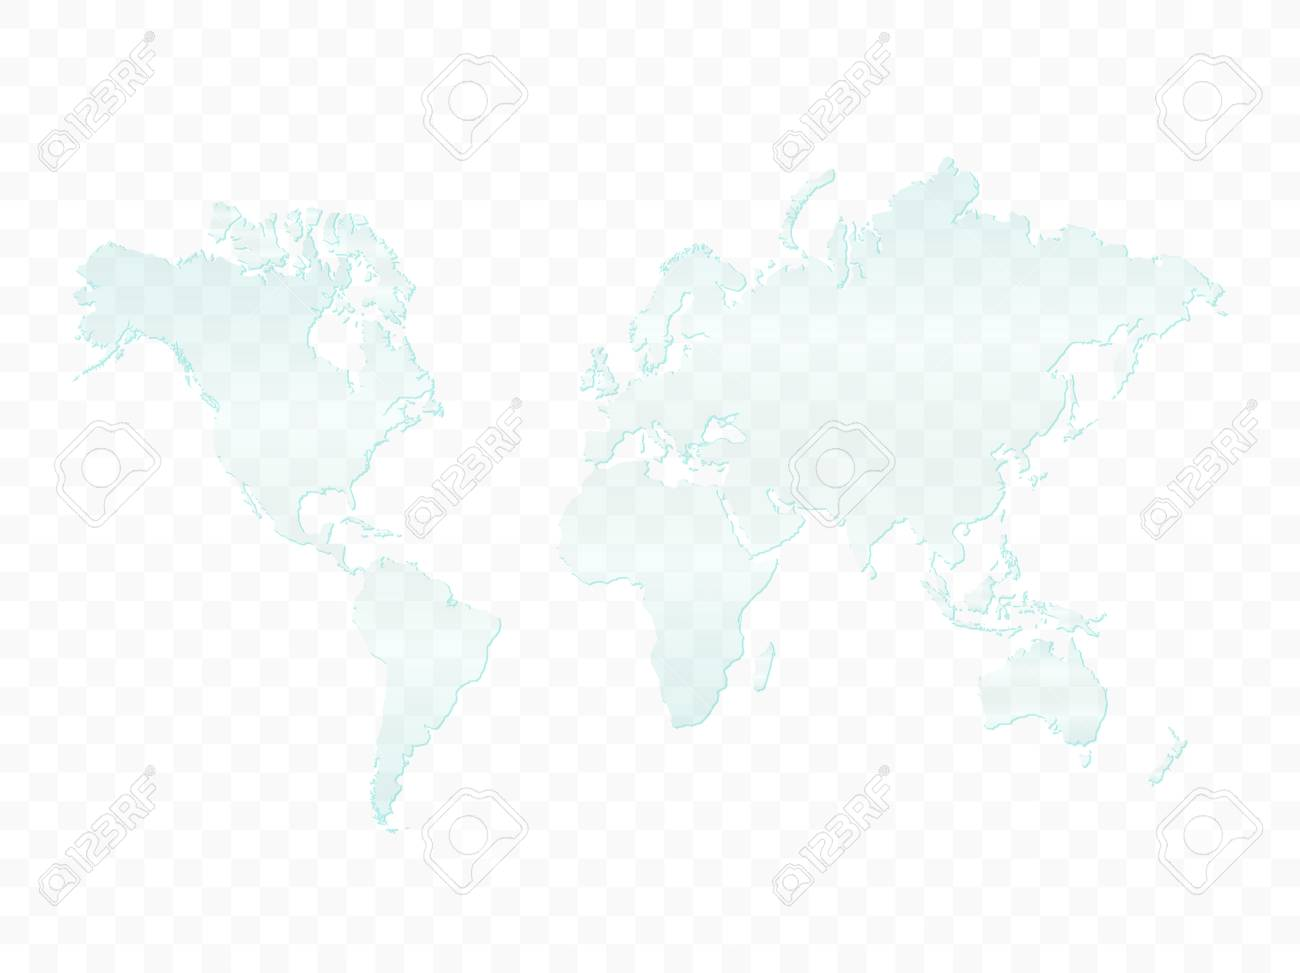 Illustration of a glass world map isolated on a checkered background. - 97016238